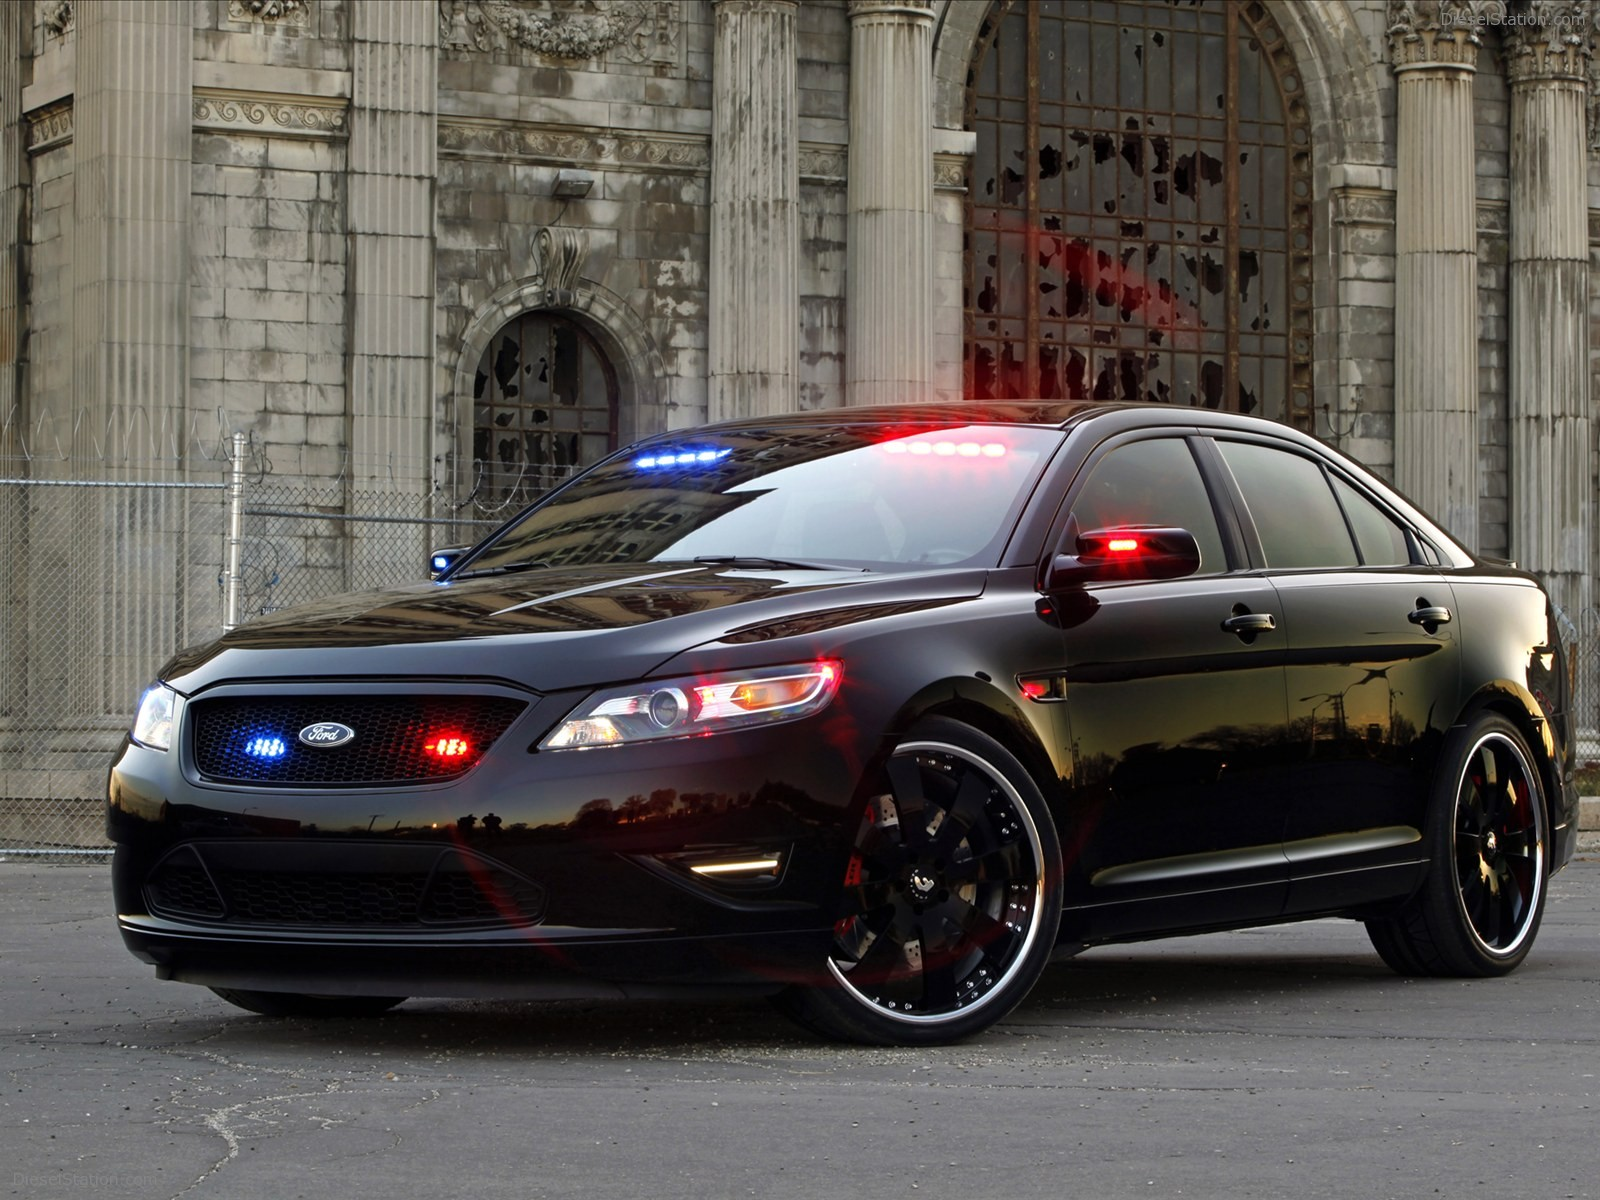 2017 Ford Stealth Police Interceptor Concept photo - 3